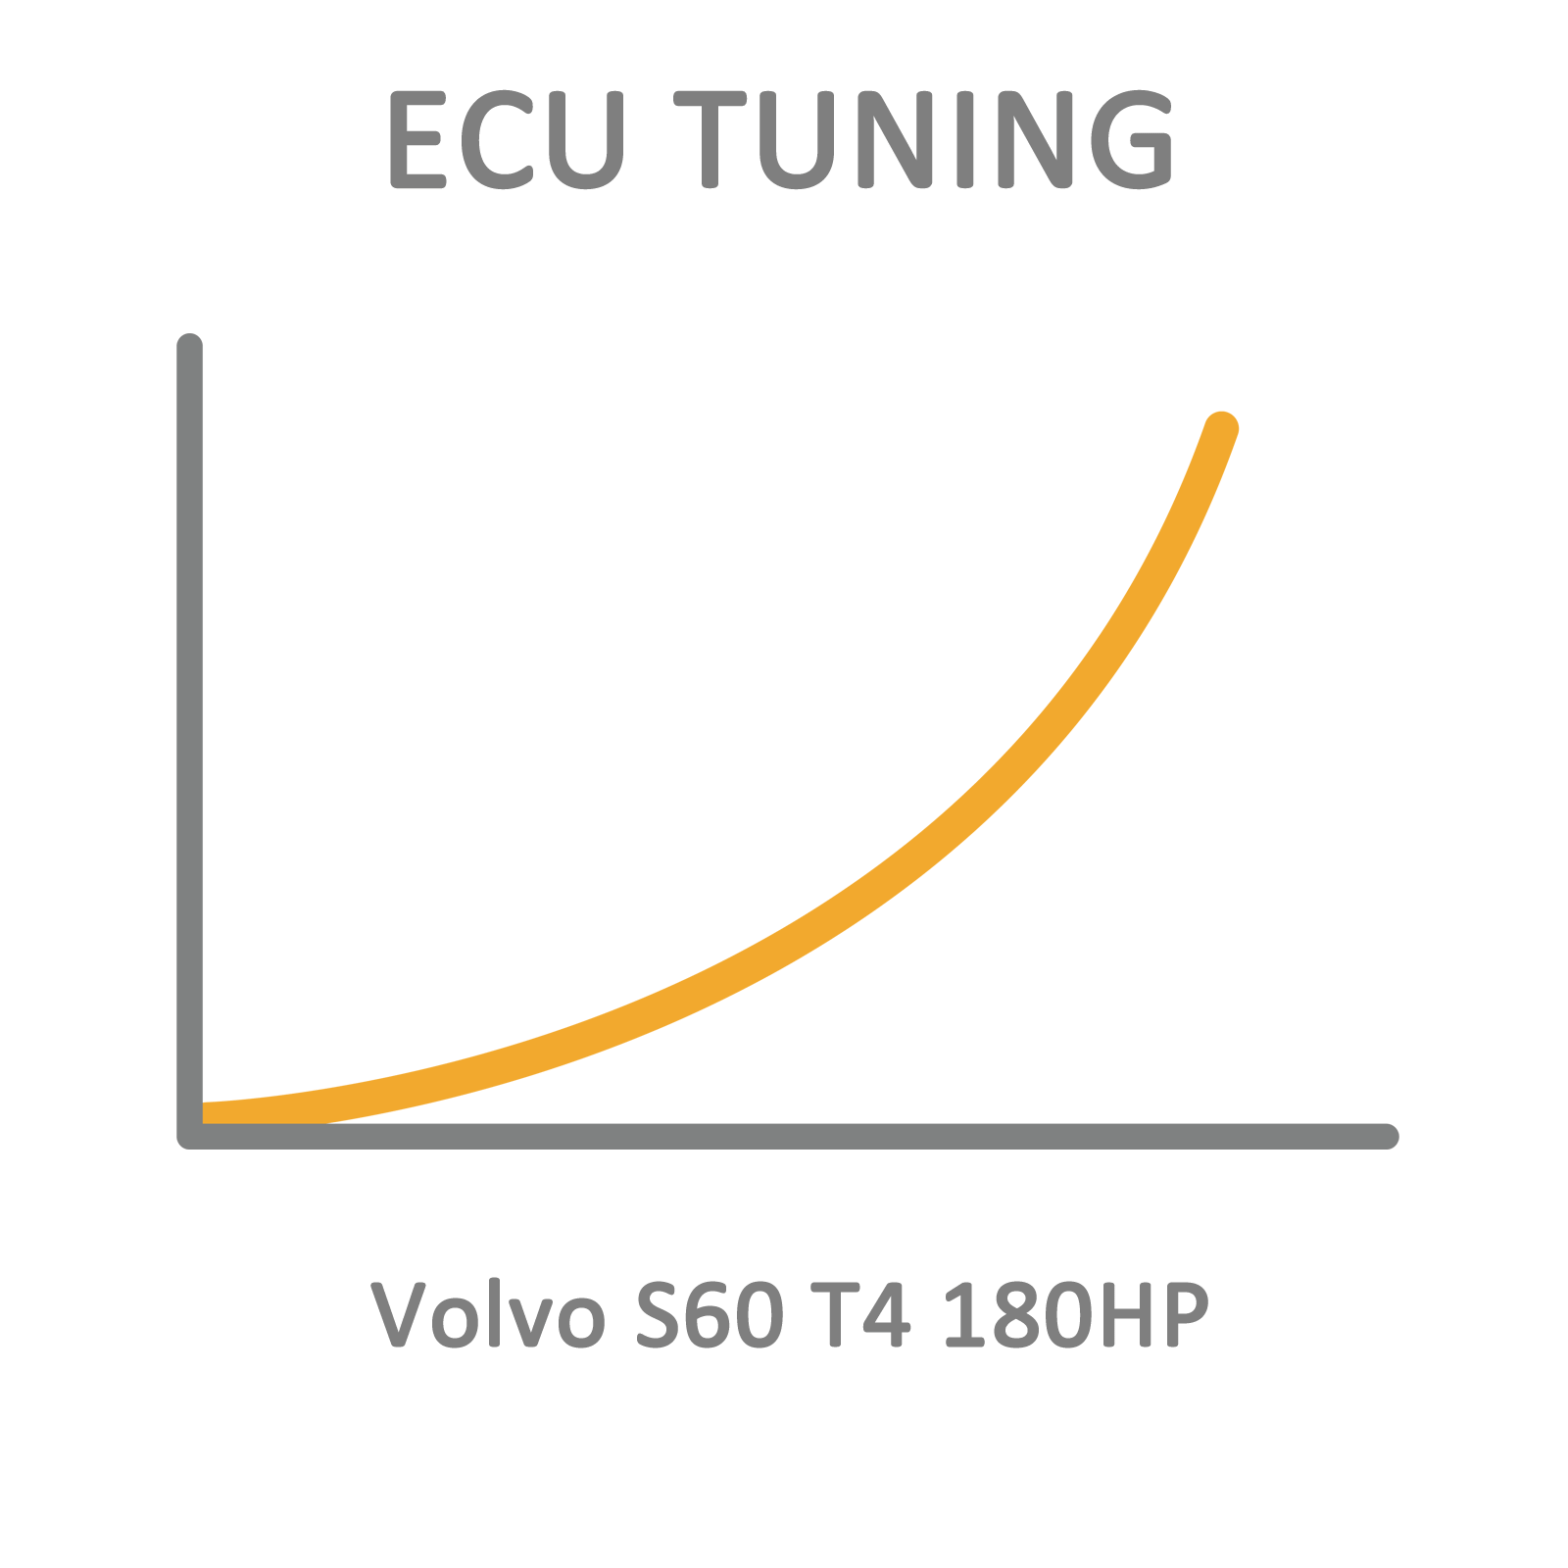 Volvo S60 T4 180HP ECU Tuning Remapping Programming